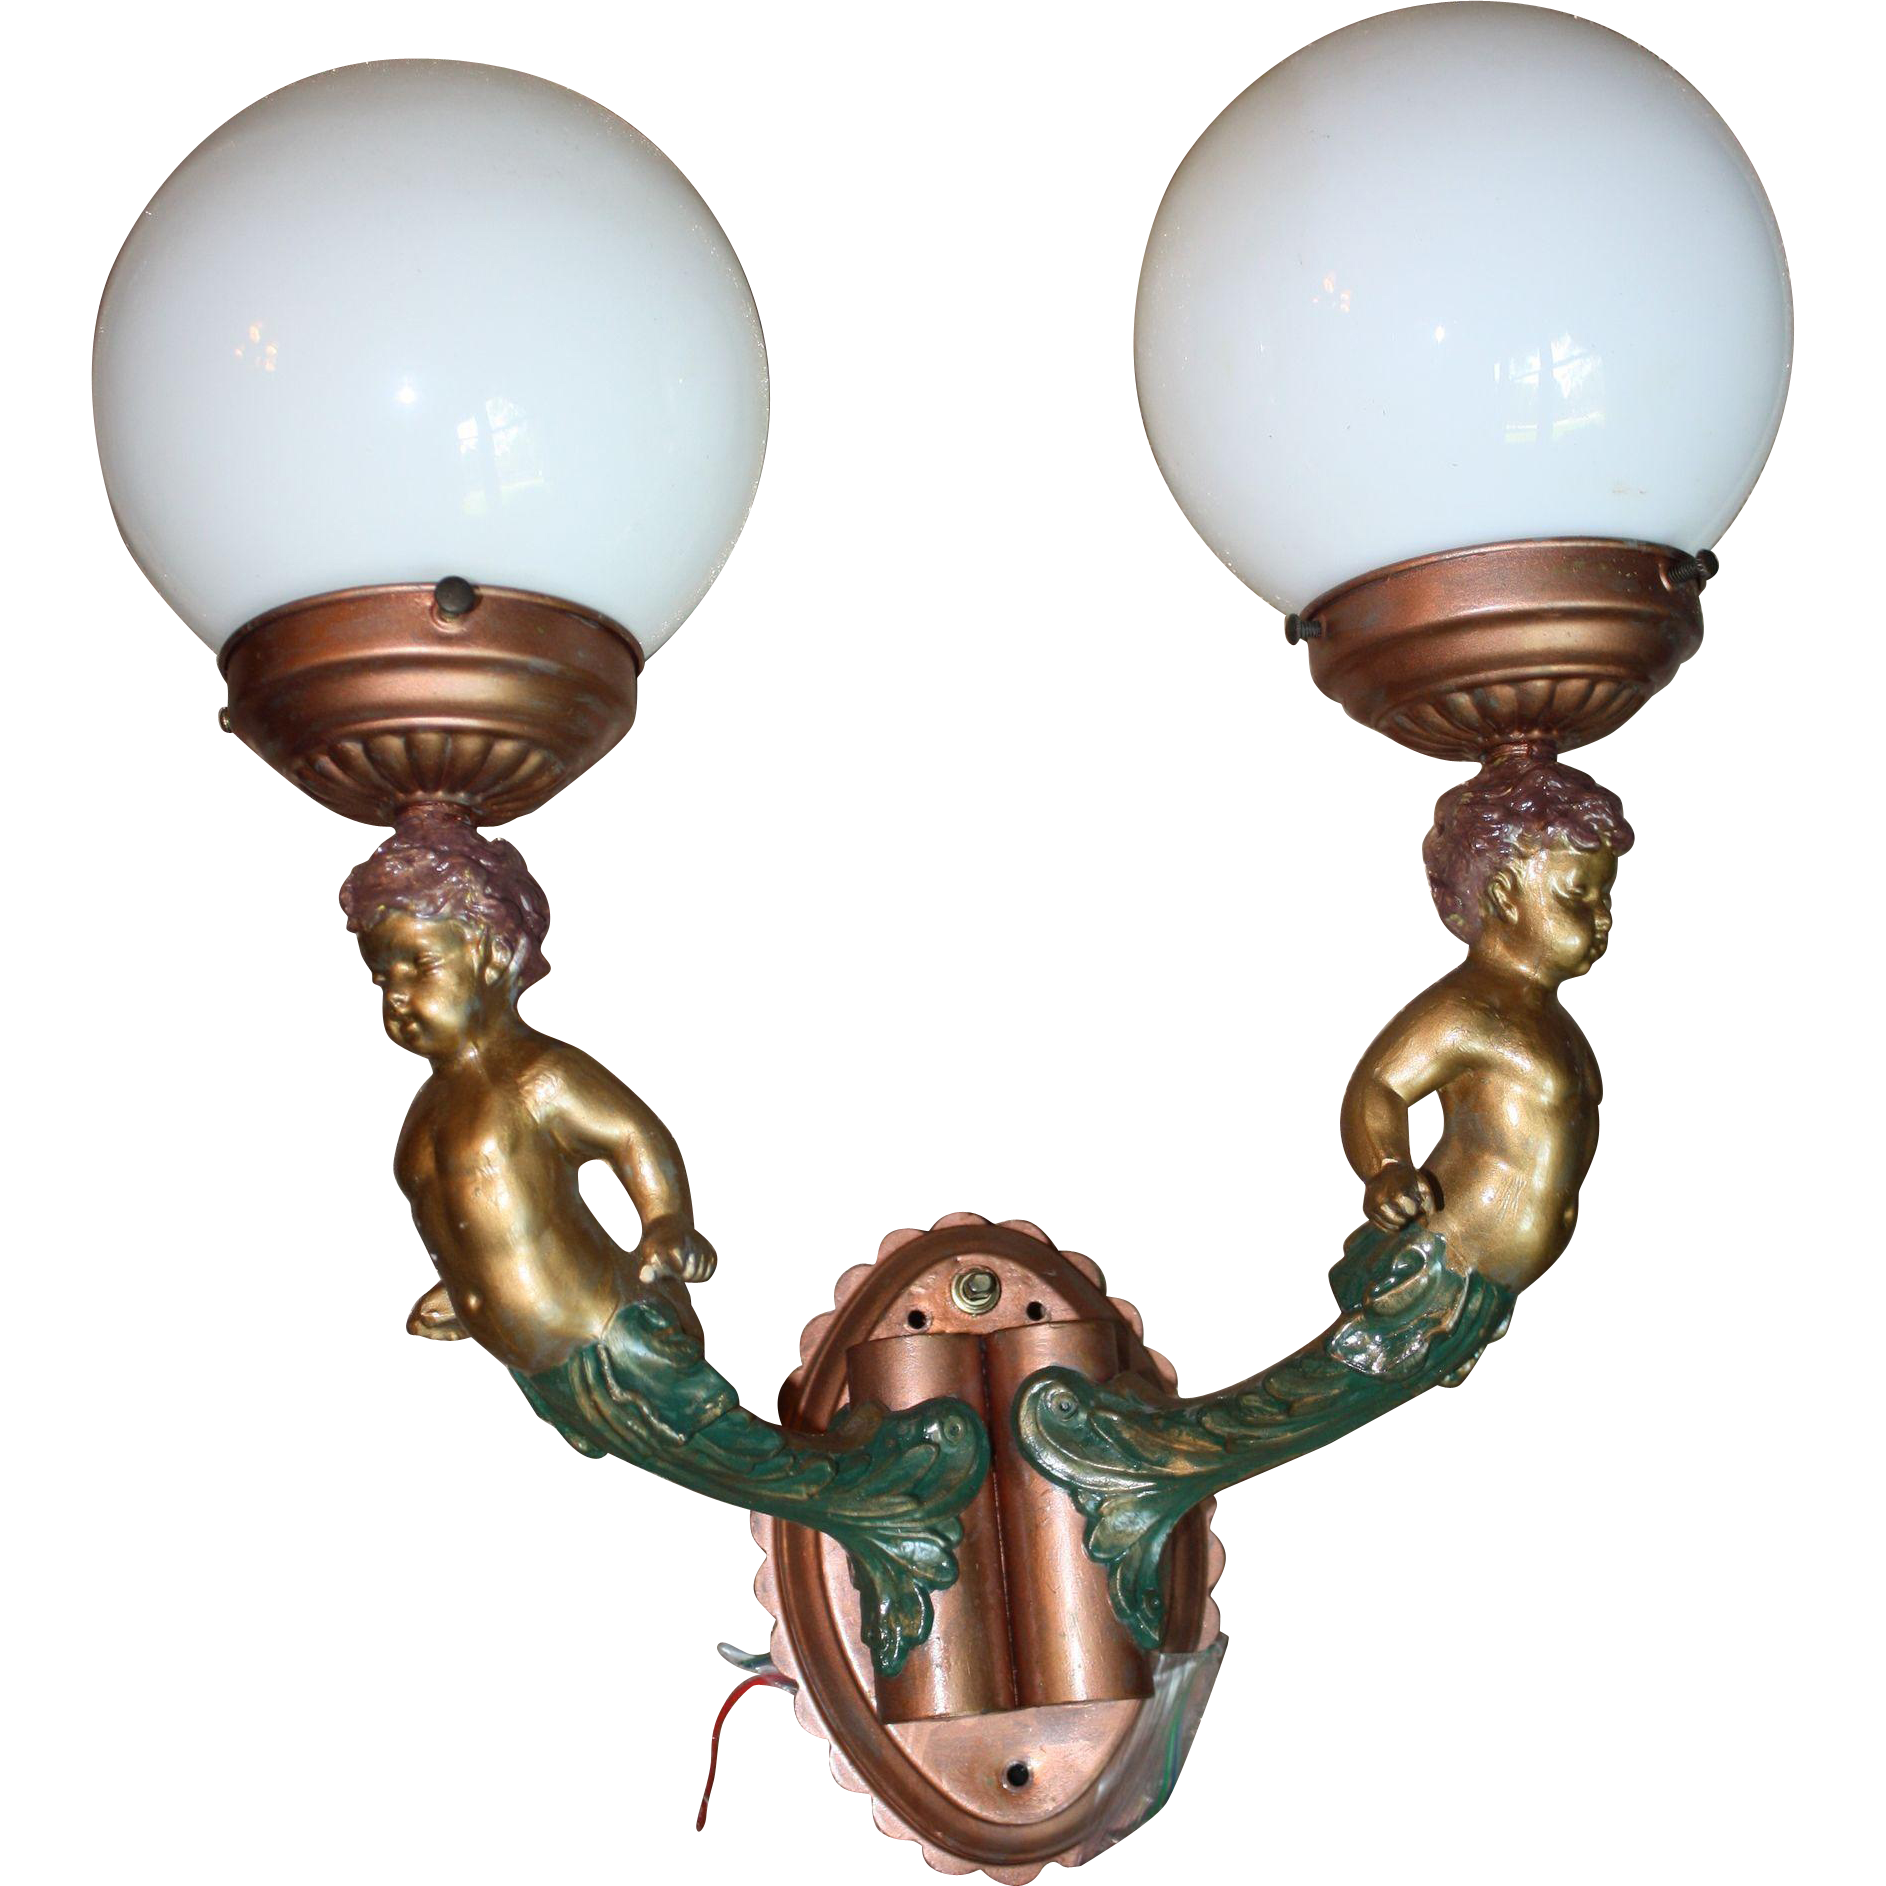 1930's Scarce Dual Globe Cherub Wall Sconce Light